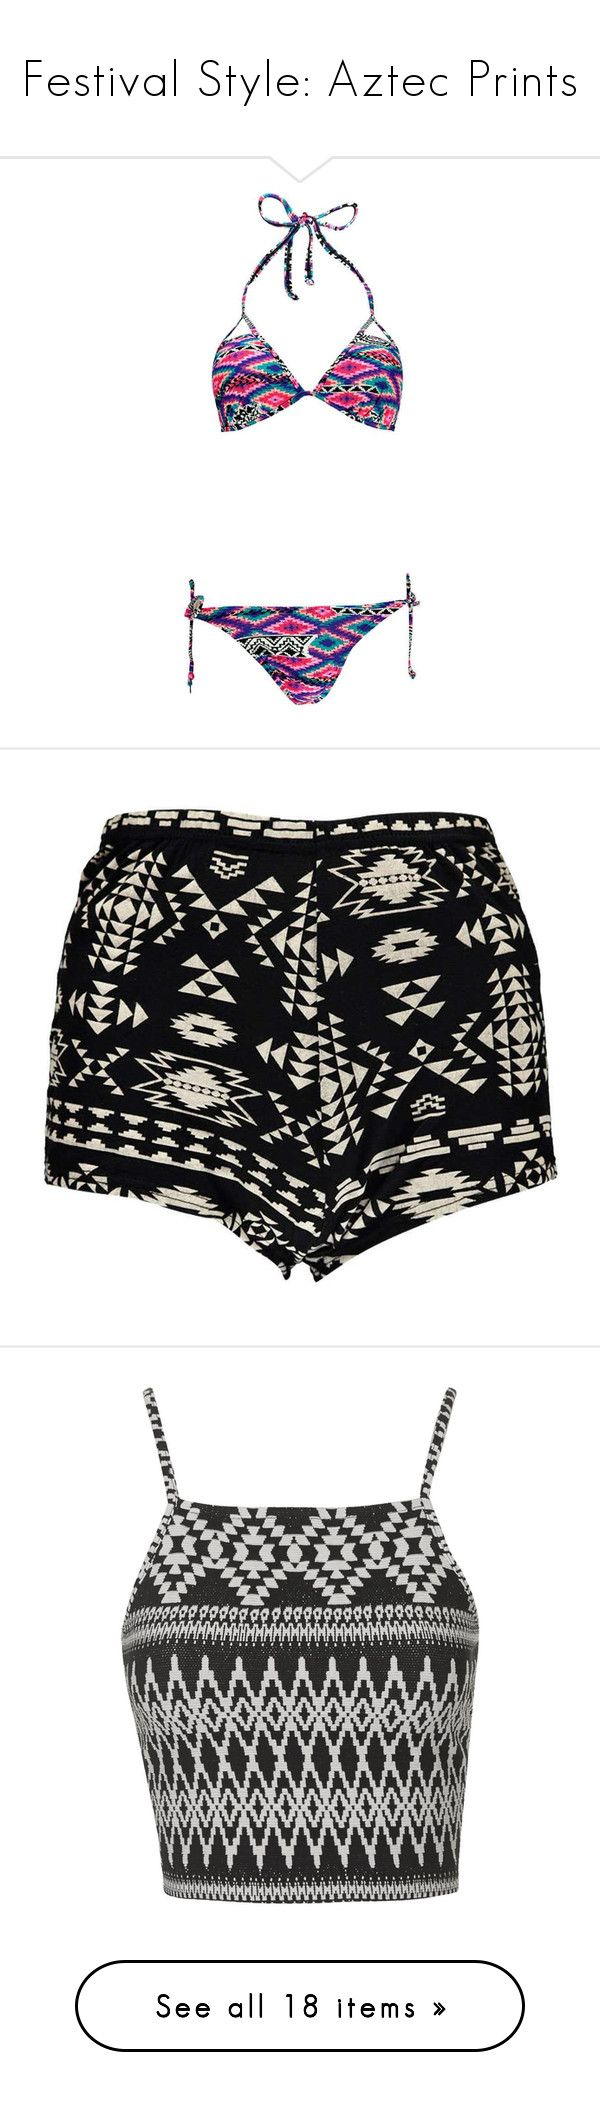 """""""Festival Style: Aztec Prints"""" by polyvore-editorial ❤ liked on Polyvore featuring aztecprints, swimwear, bikinis, swimsuits, bathing suits, swim, high waisted bikini swimsuit, high-waisted bathing suits, high-waisted bikinis and bandeau bikini"""